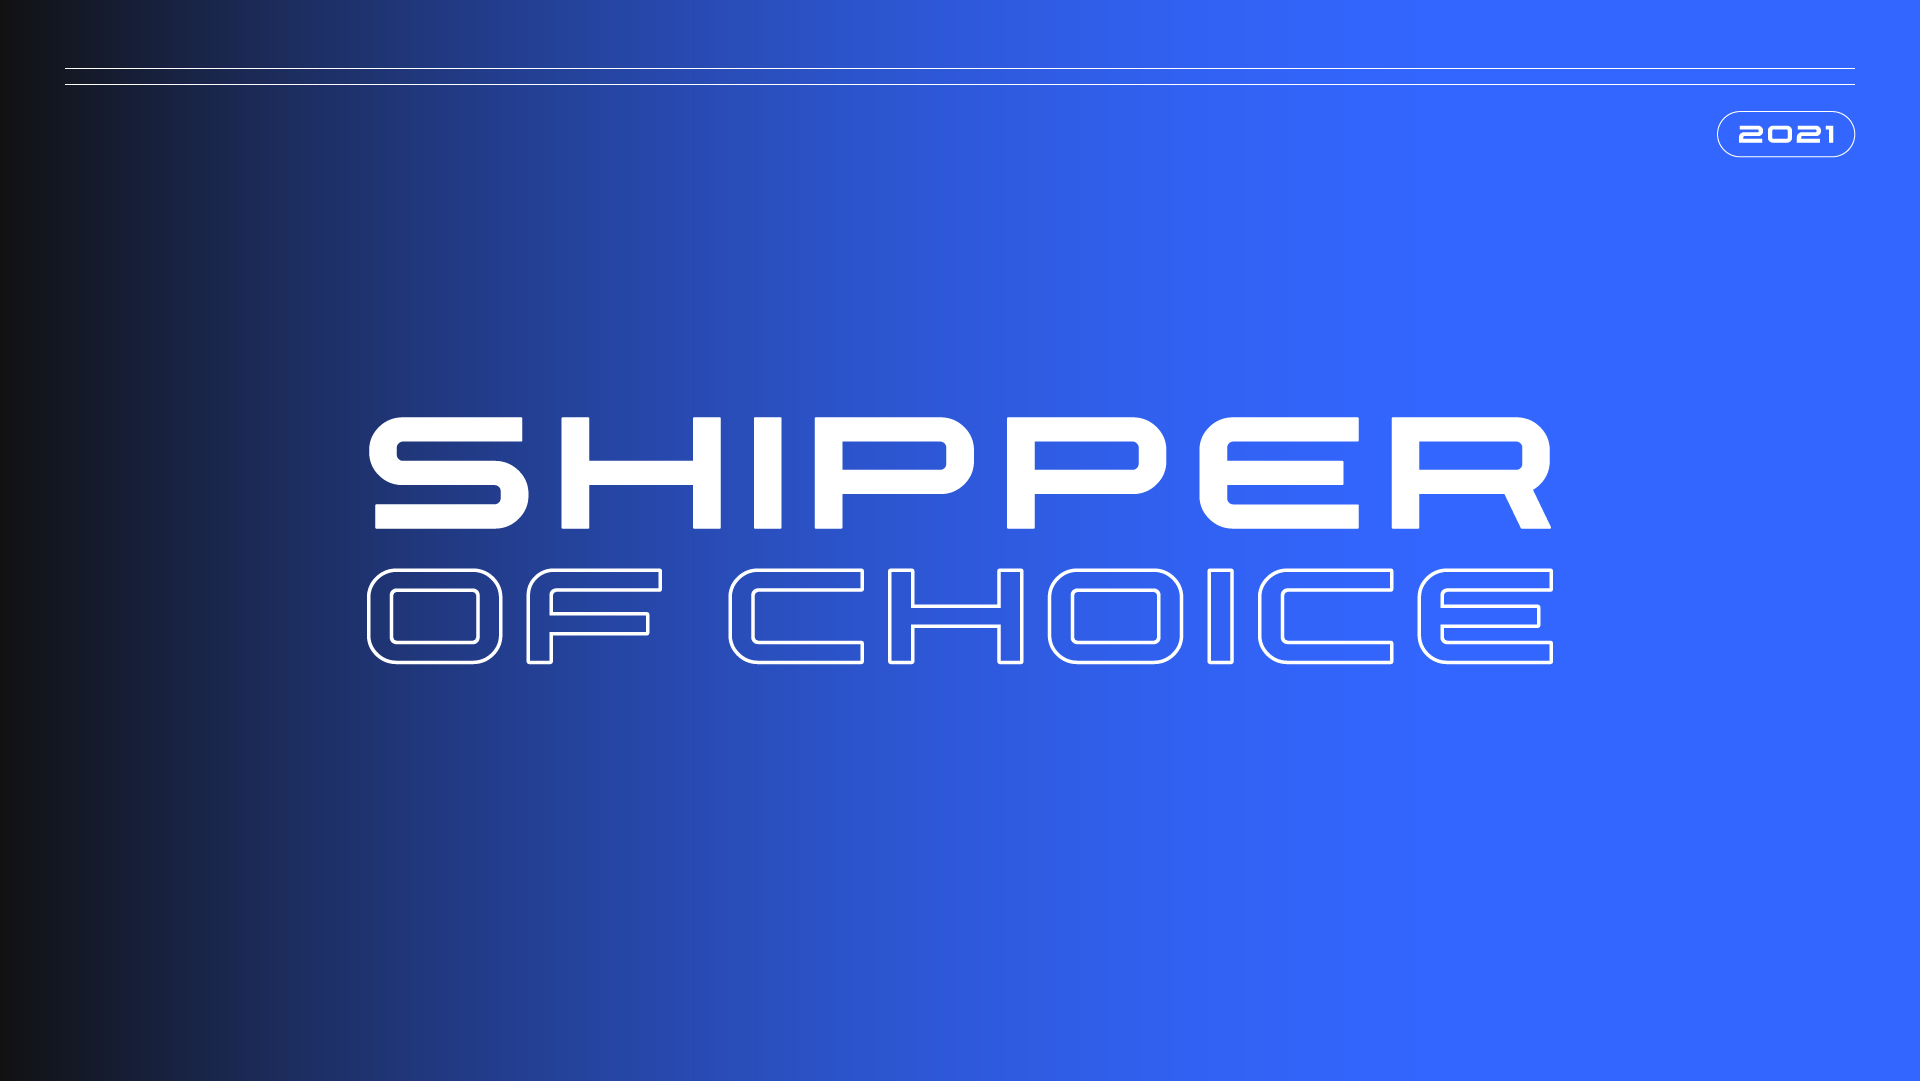 FreightWaves LIVE: Blue Triton Brands takes Shipper of Choice Award